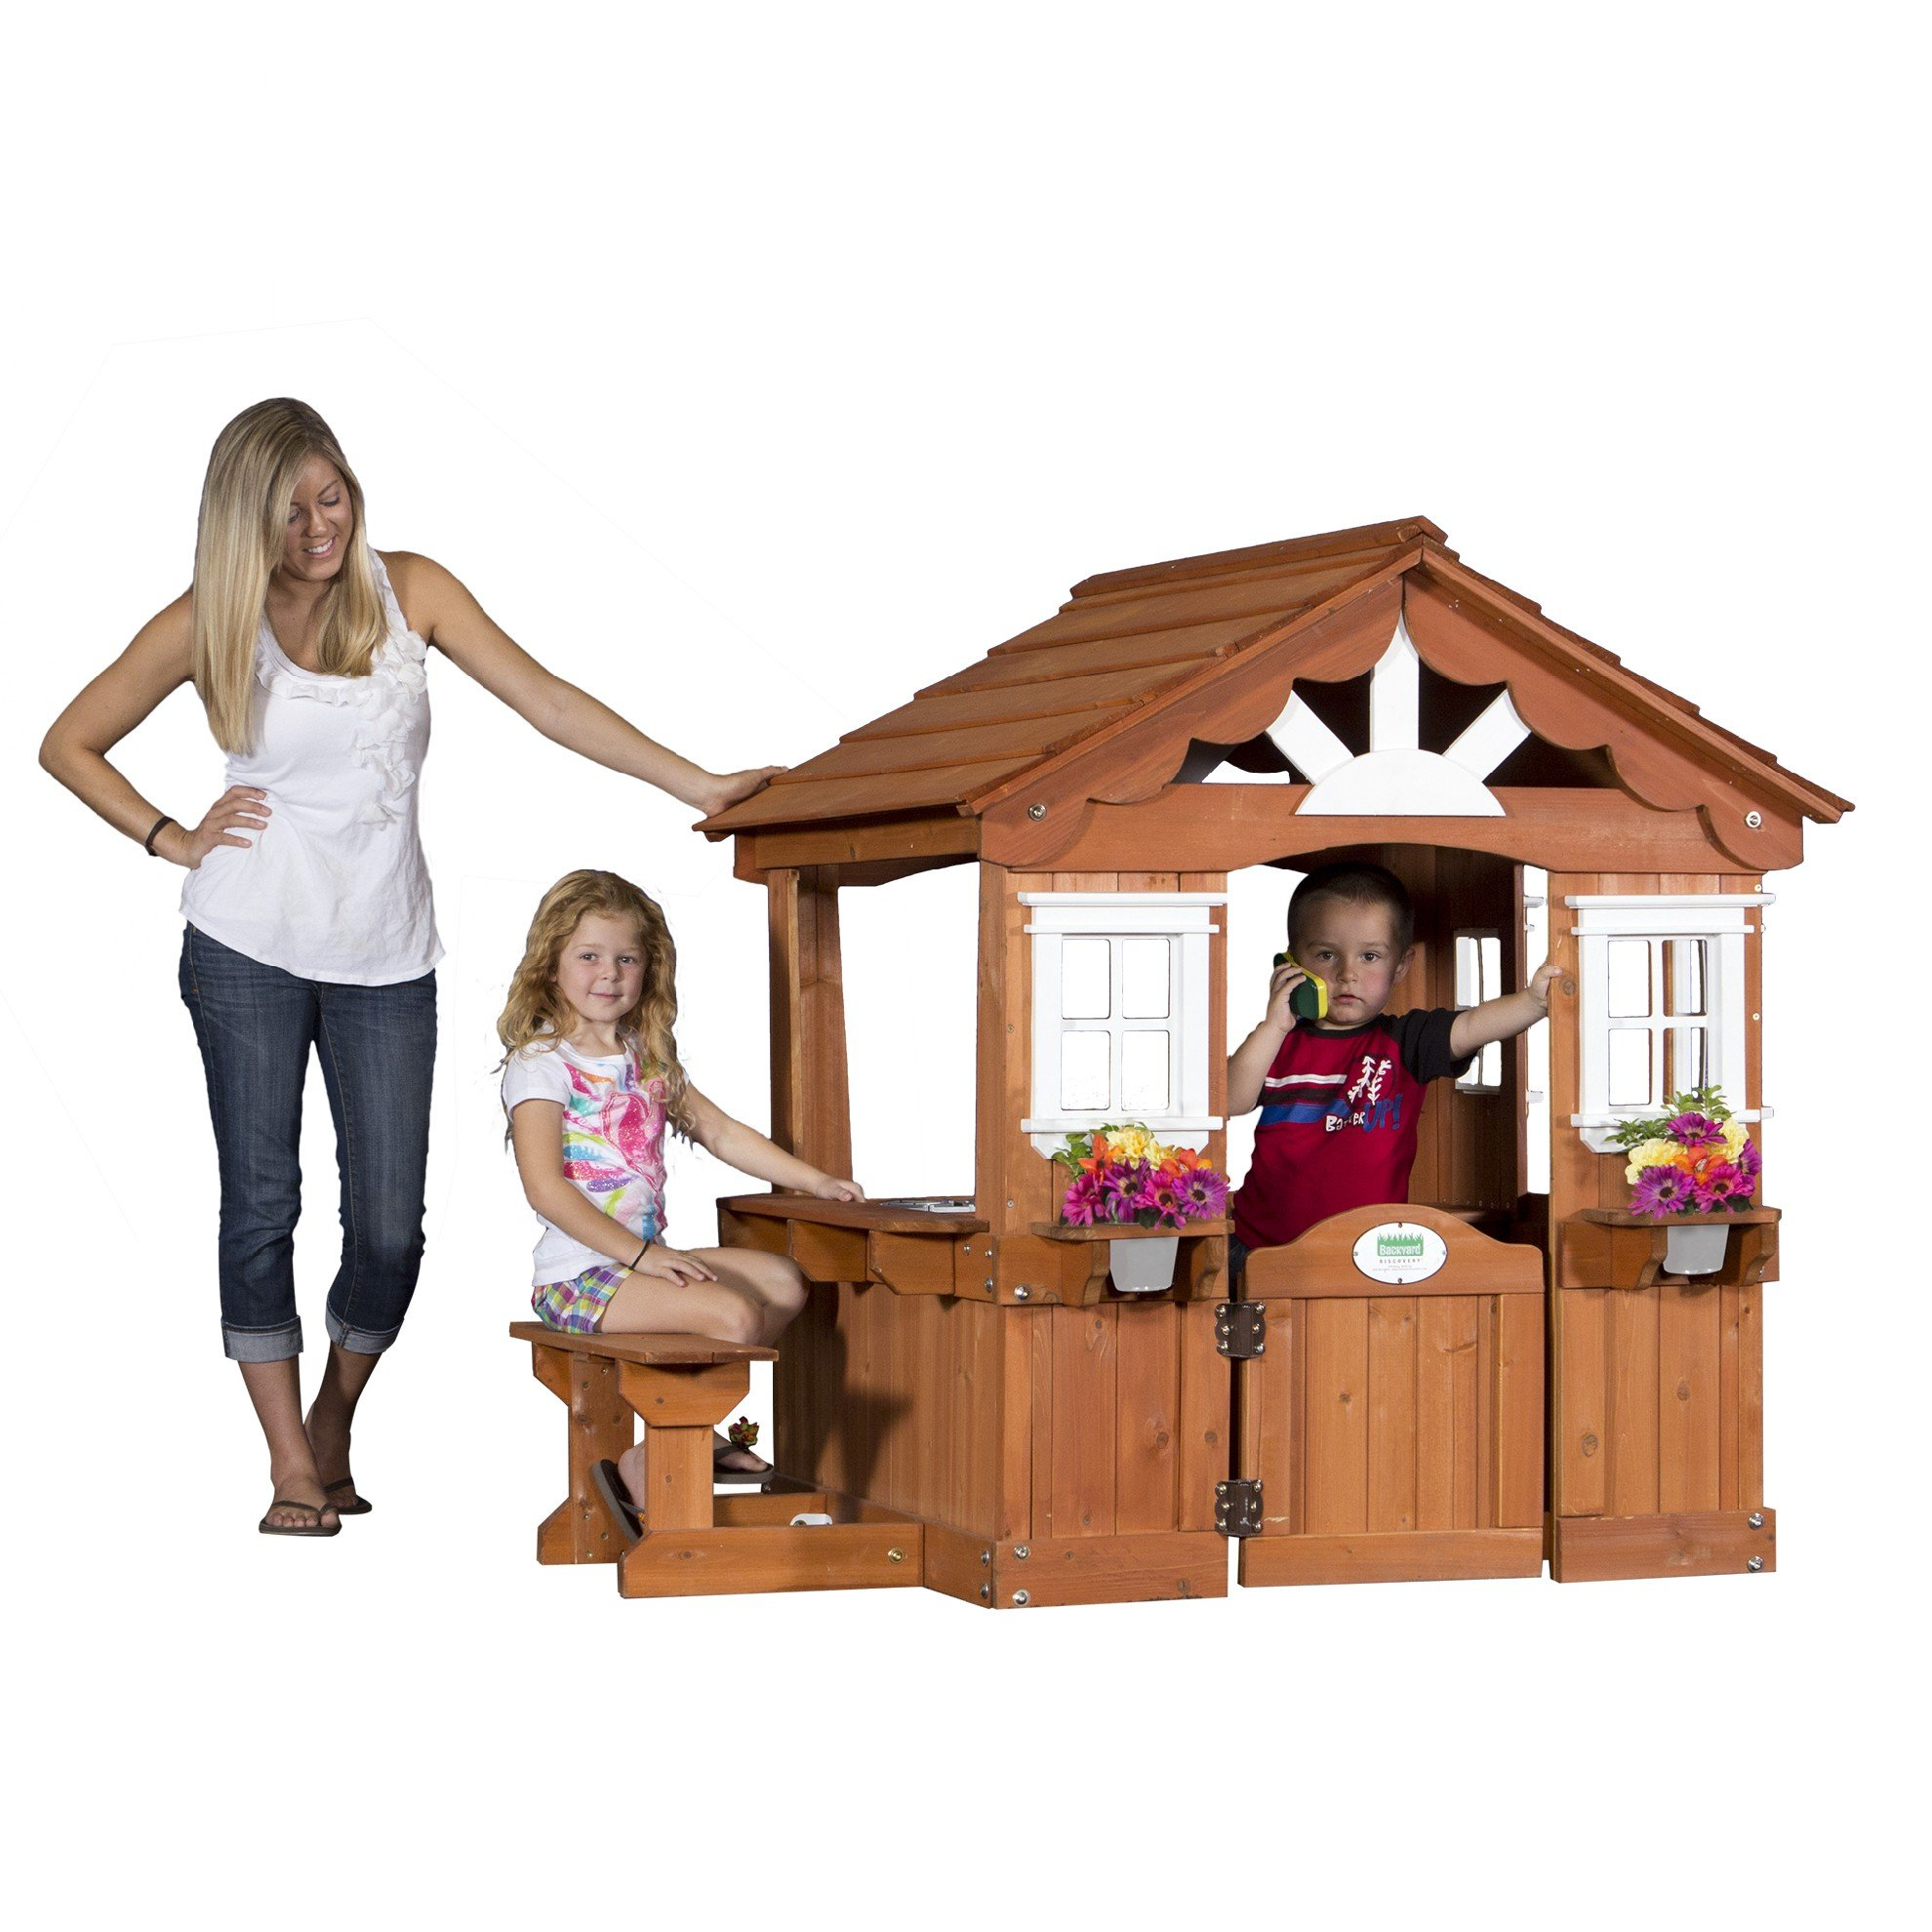 Backyard Discovery Scenic All Cedar Outdoor Wooden Playhouse by Backyard Discovery (Image #1)